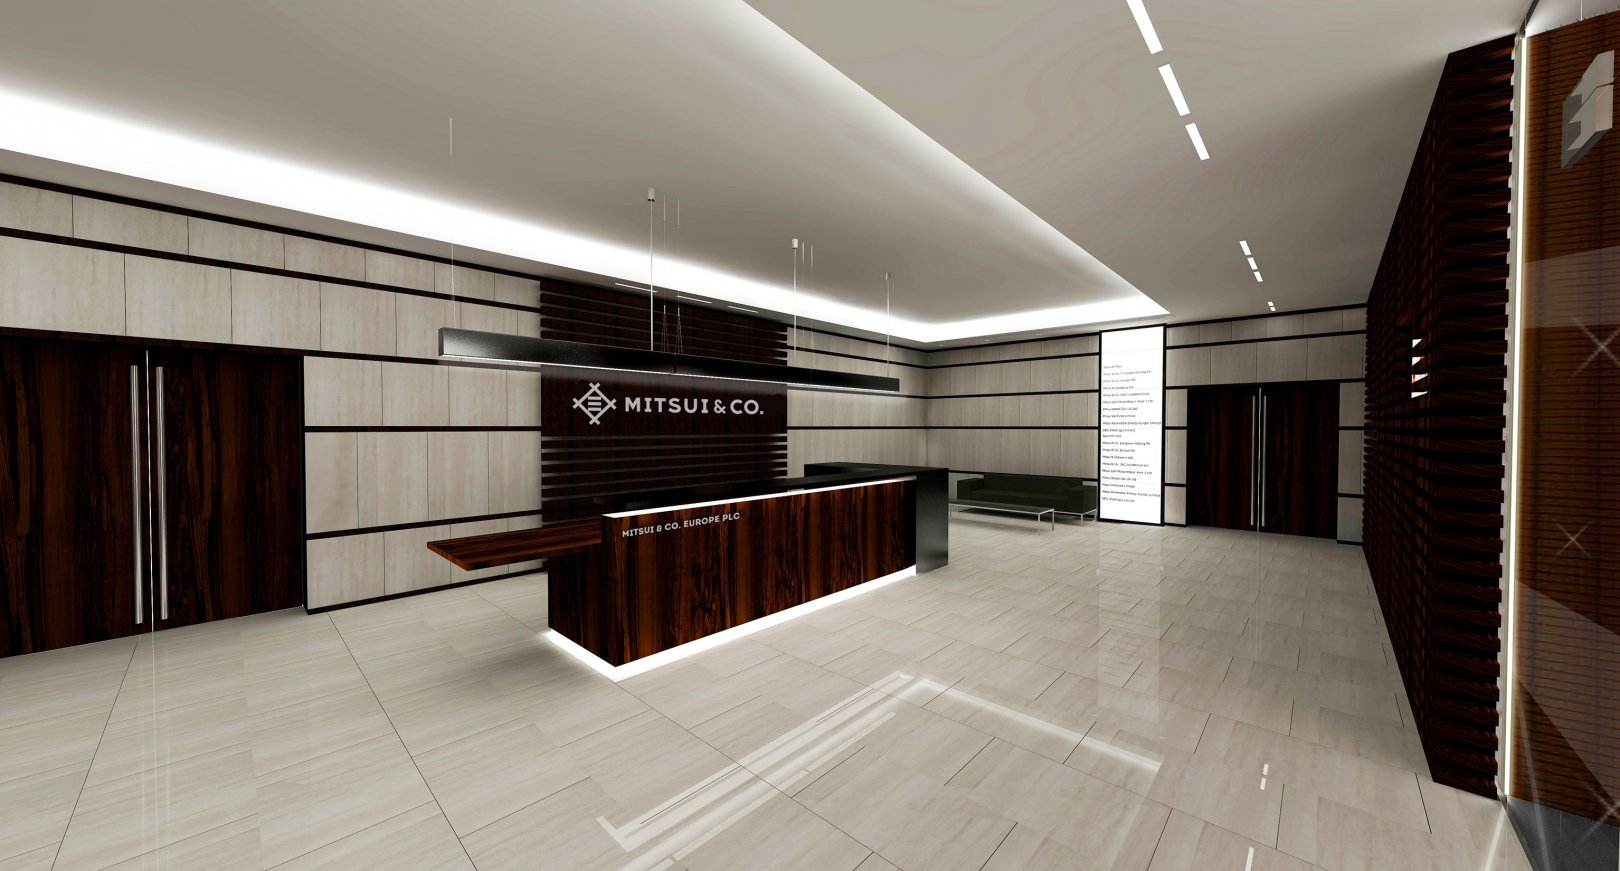 Mitsui co lateral concepts - Selfridges head office telephone number ...